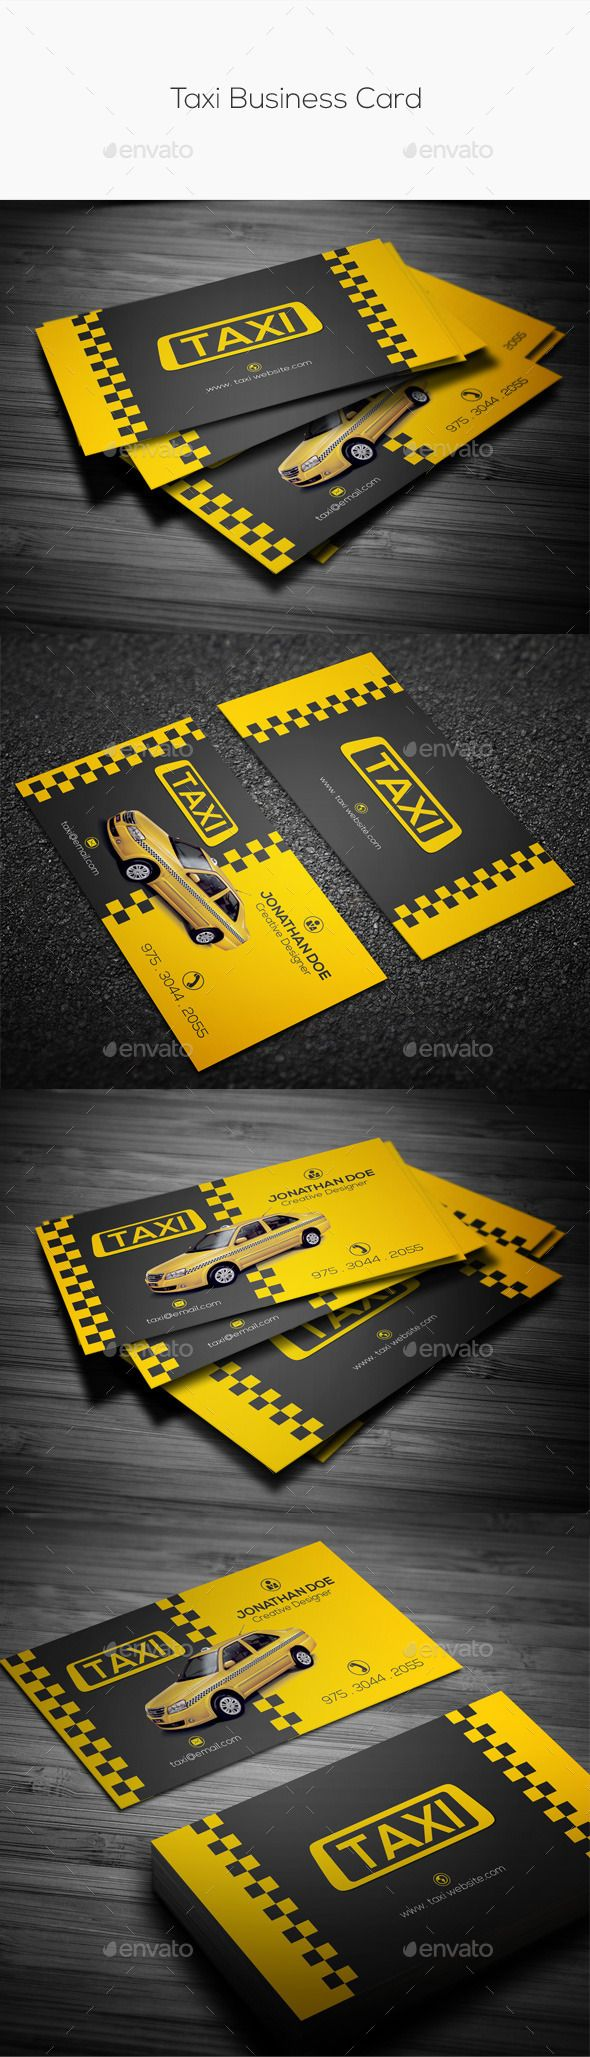 63 best taxi images on Pinterest | Business card design, Business ...